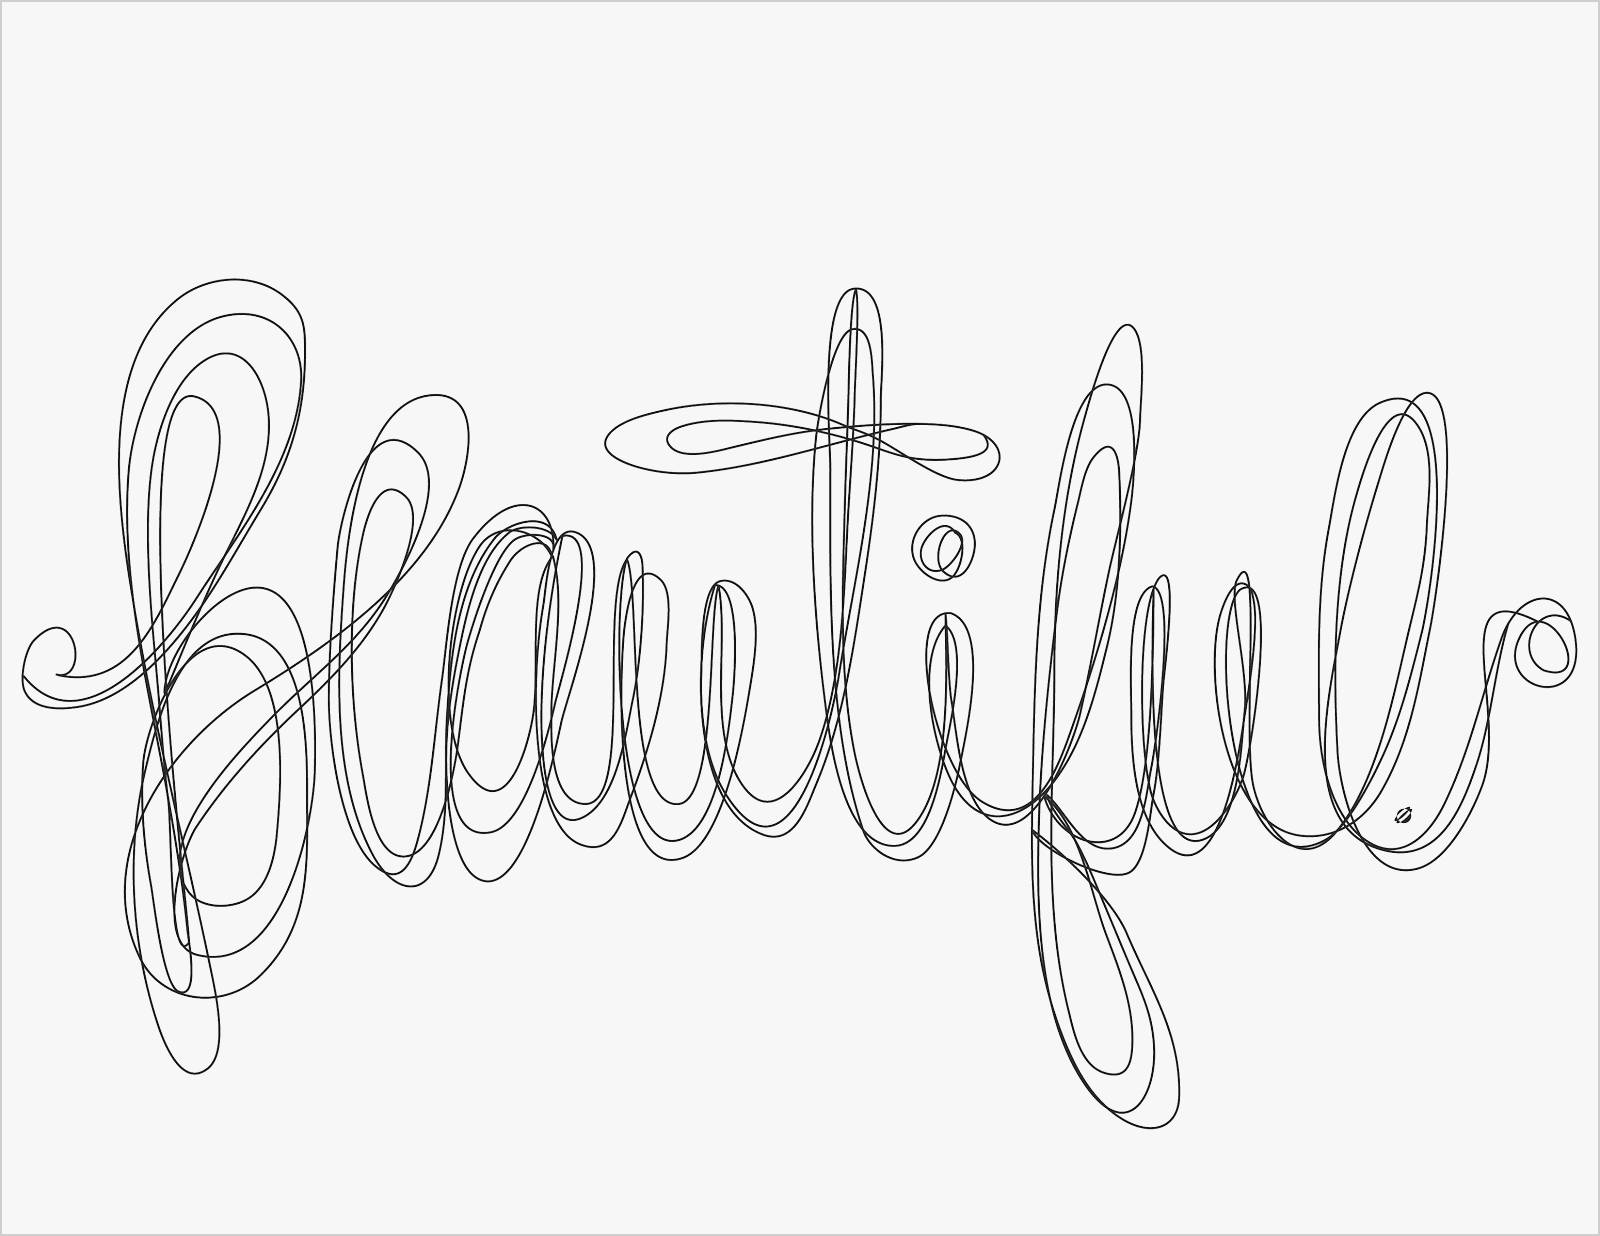 B Coloring Page Free Collection Of 48 Letter B Coloring Pages Download Them